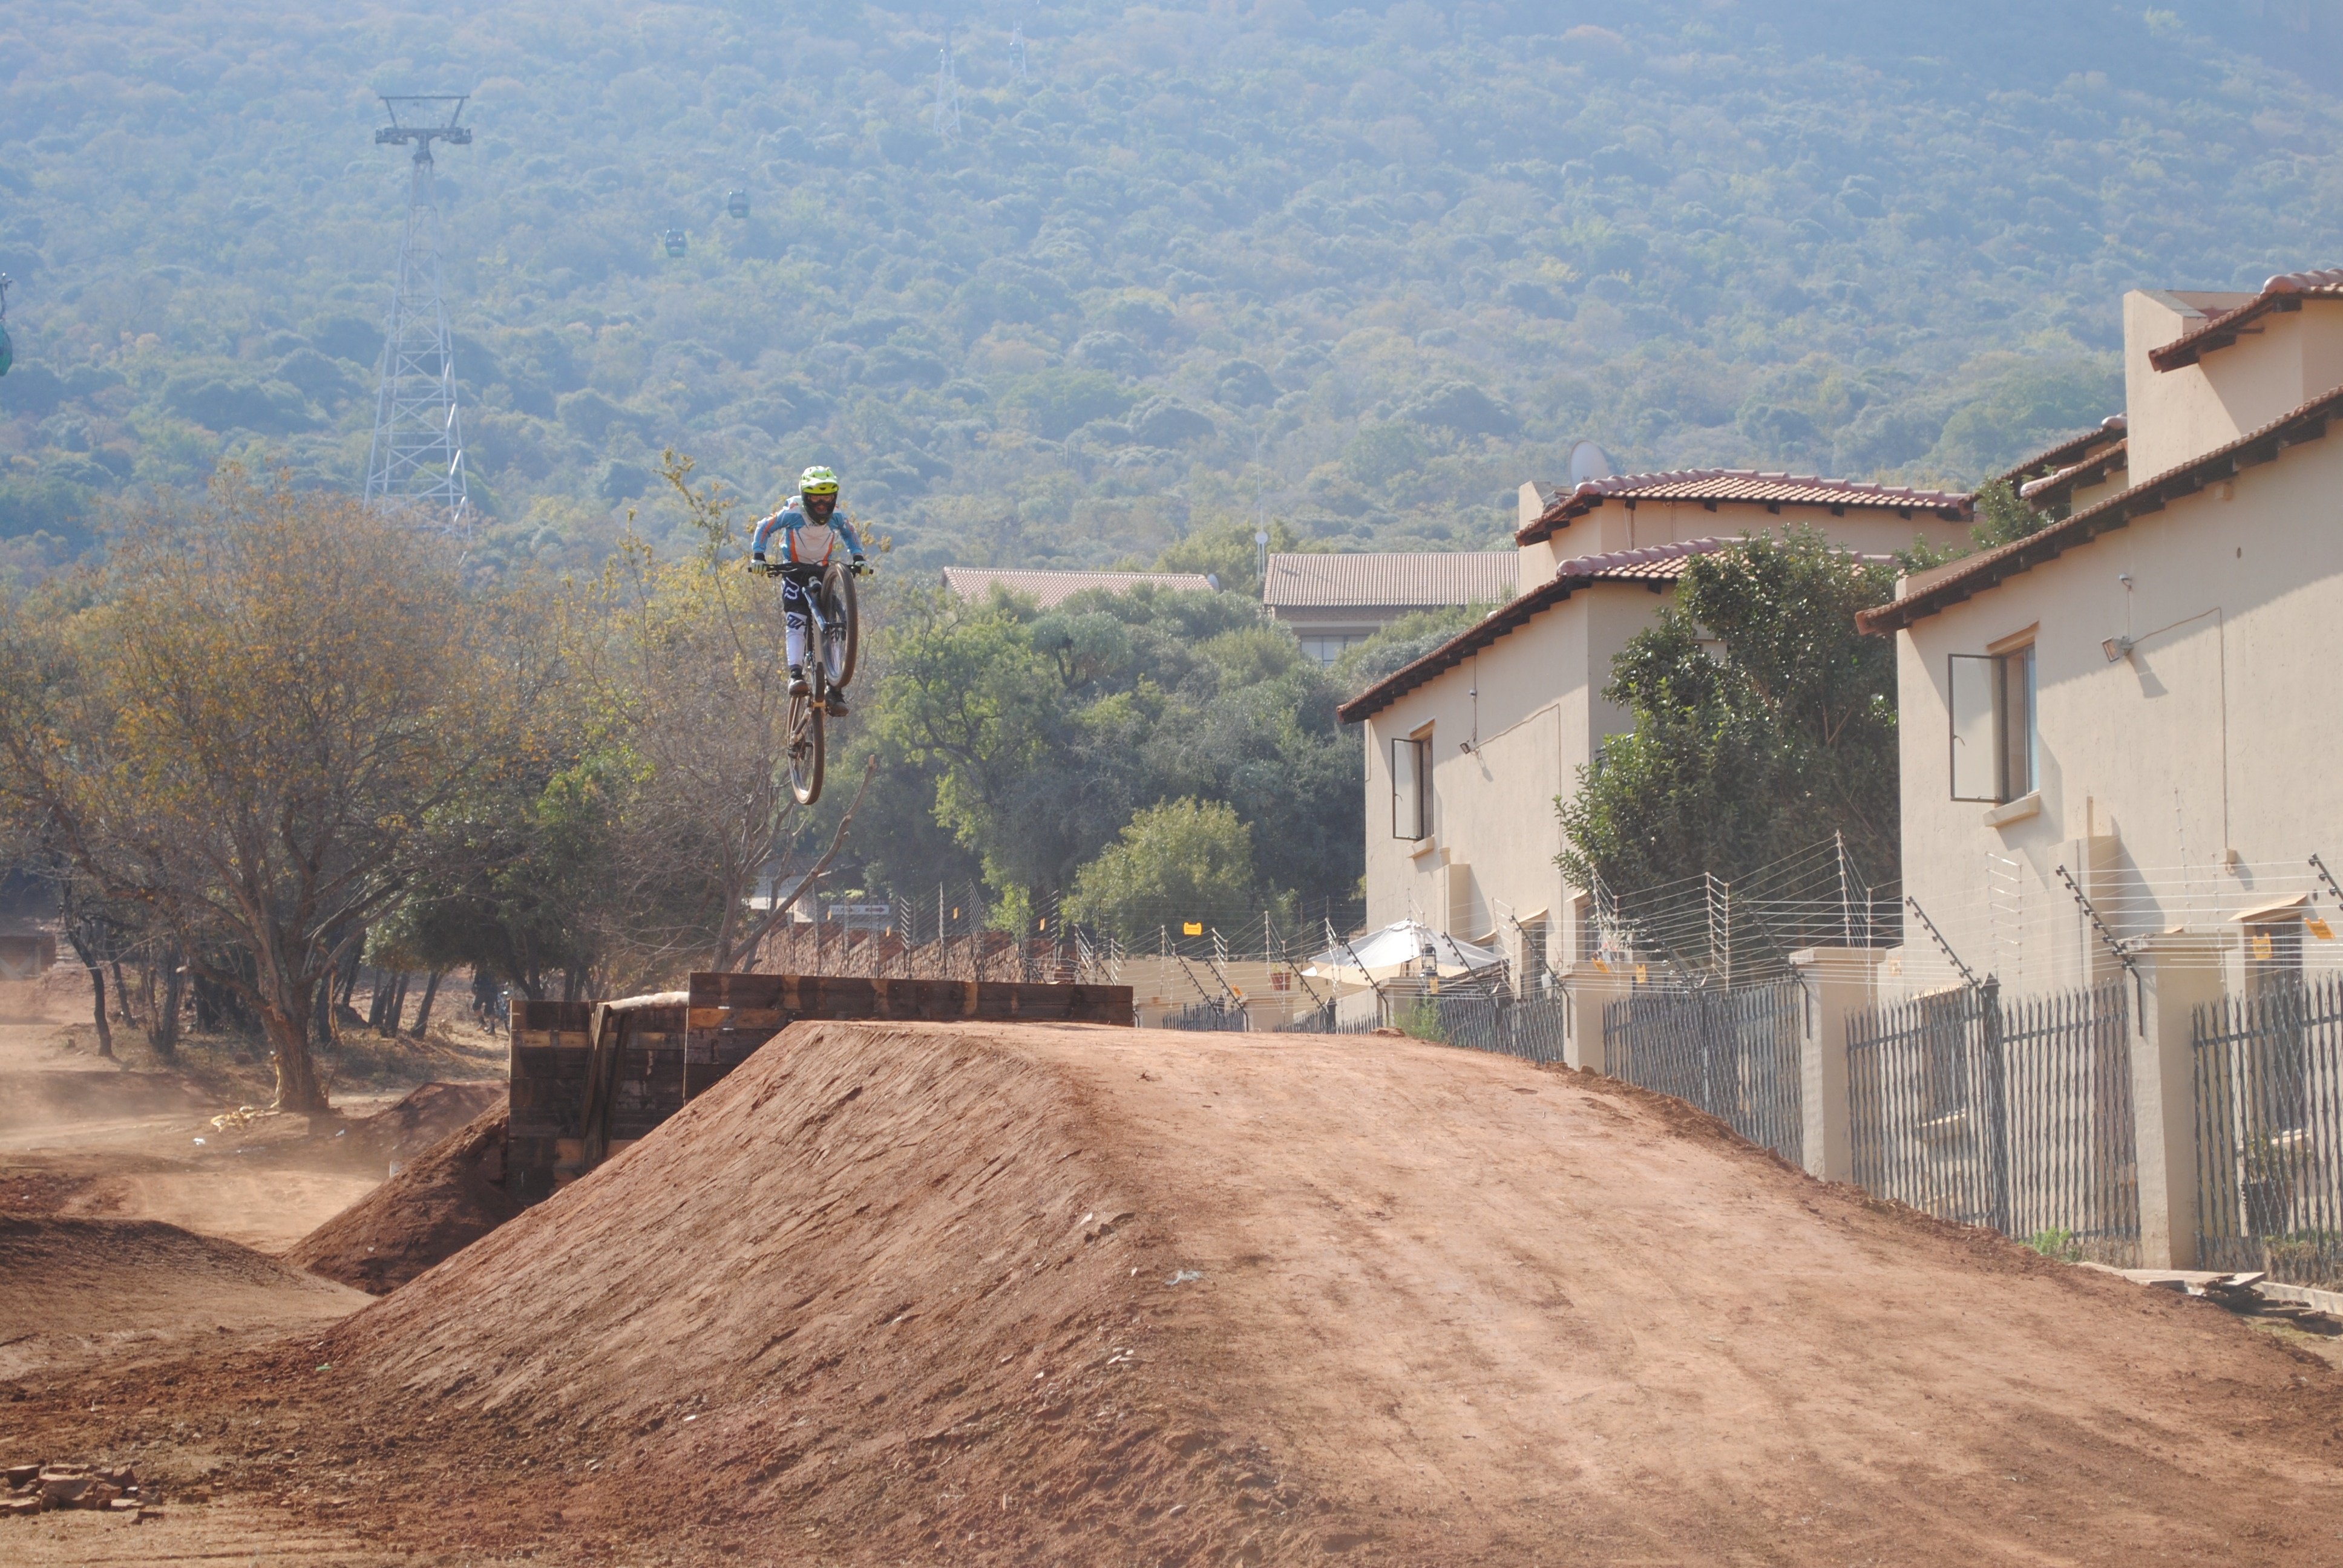 Bobcat on track to make SA Downhill Cup 2019 a resounding success